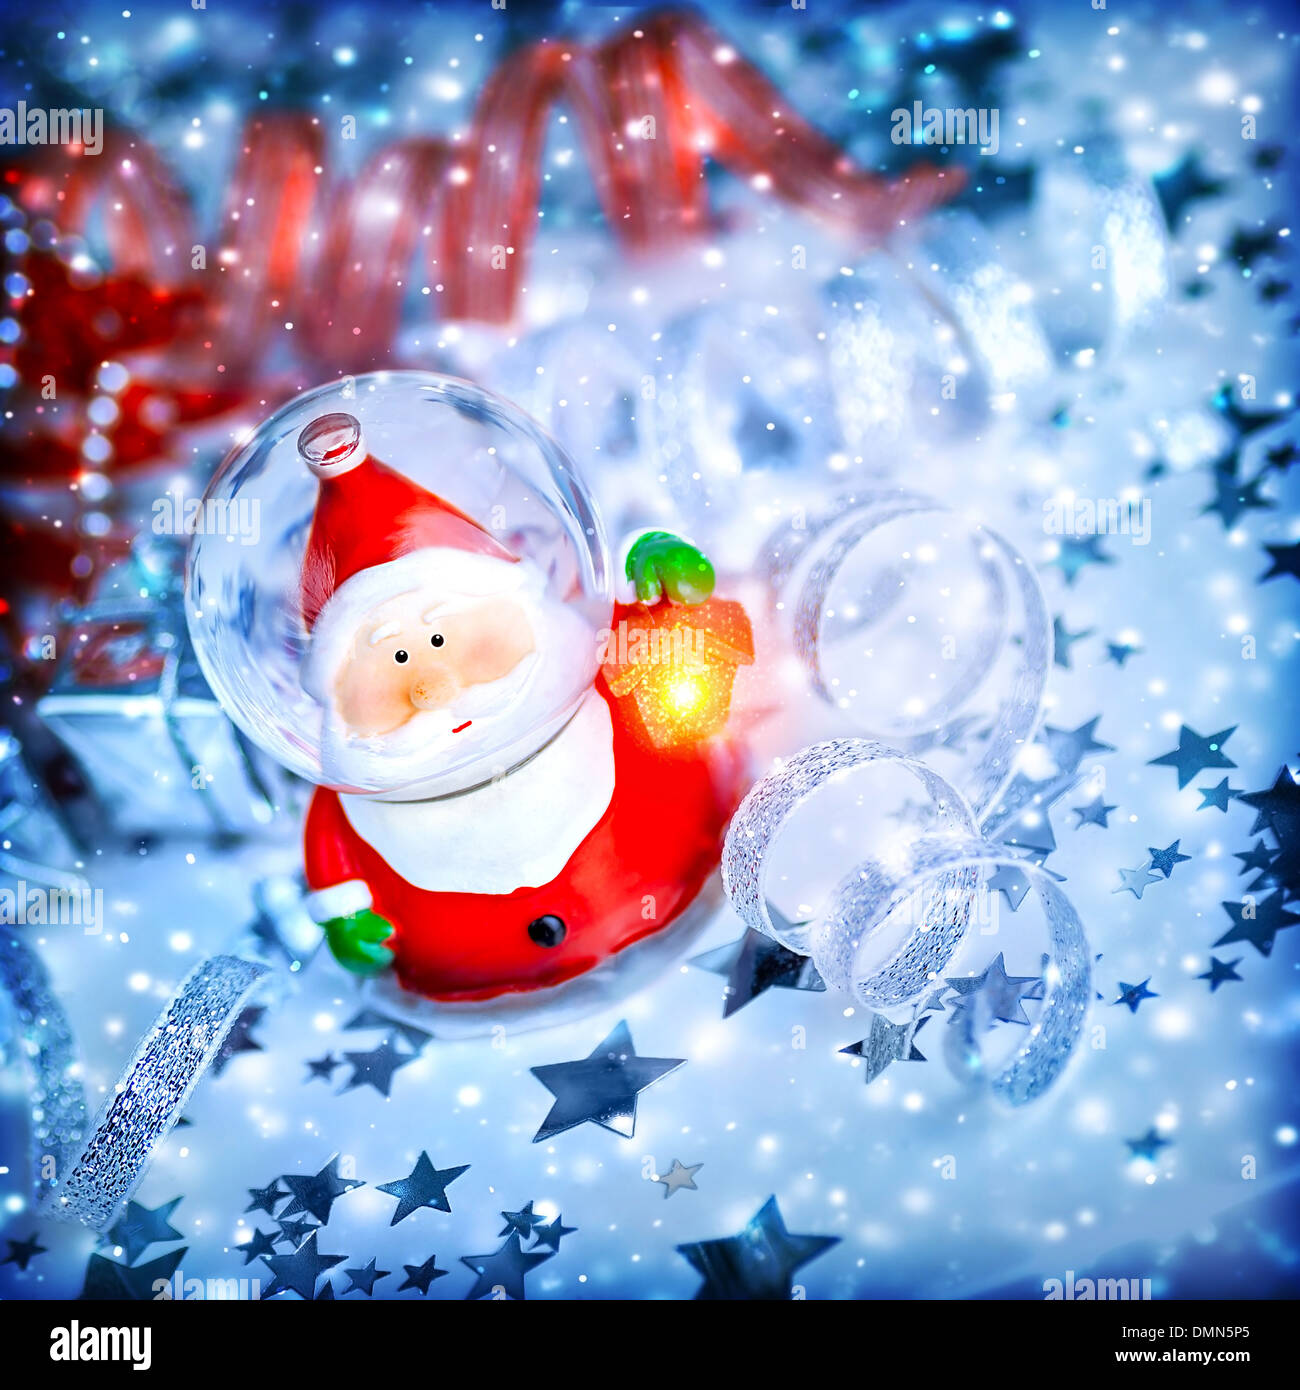 Blue christmas background with cute snow globe santa claus over blue christmas background with cute snow globe santa claus over stars magic of christmas eve and winter holidays m4hsunfo Images